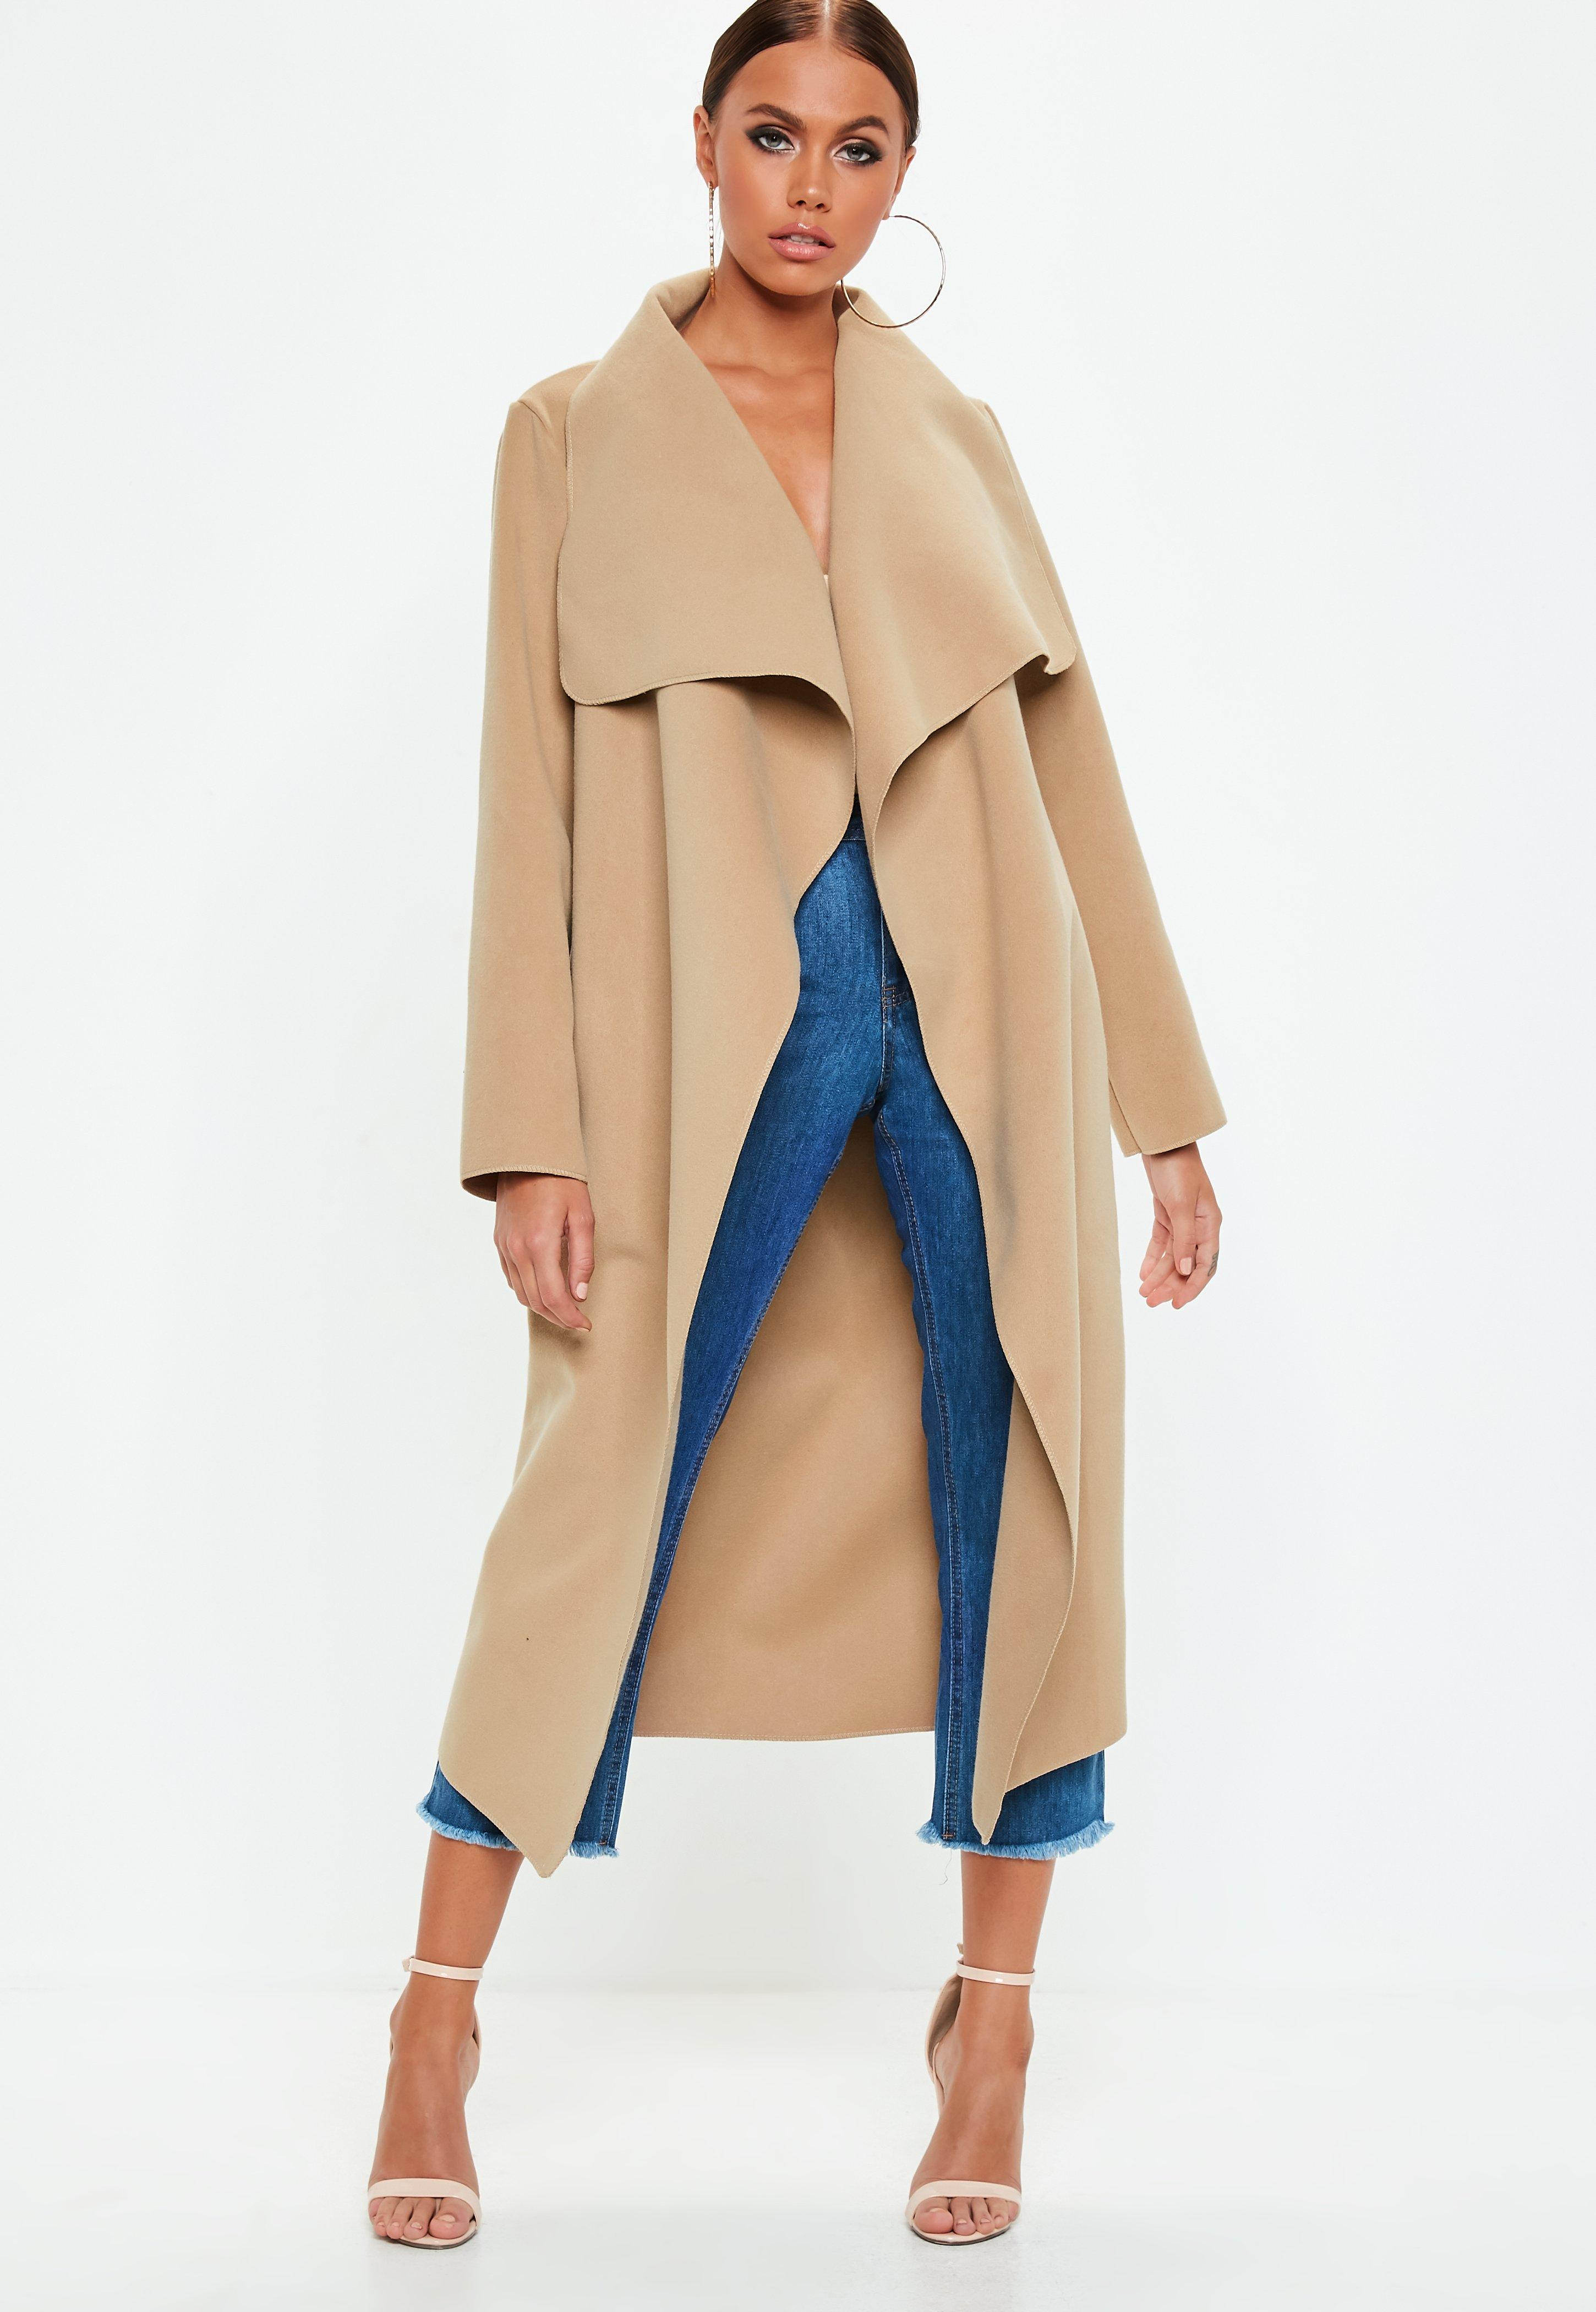 zso shipped in jacket empathetic at spandex outerwear women drapes coats zappos free drape amelia coat